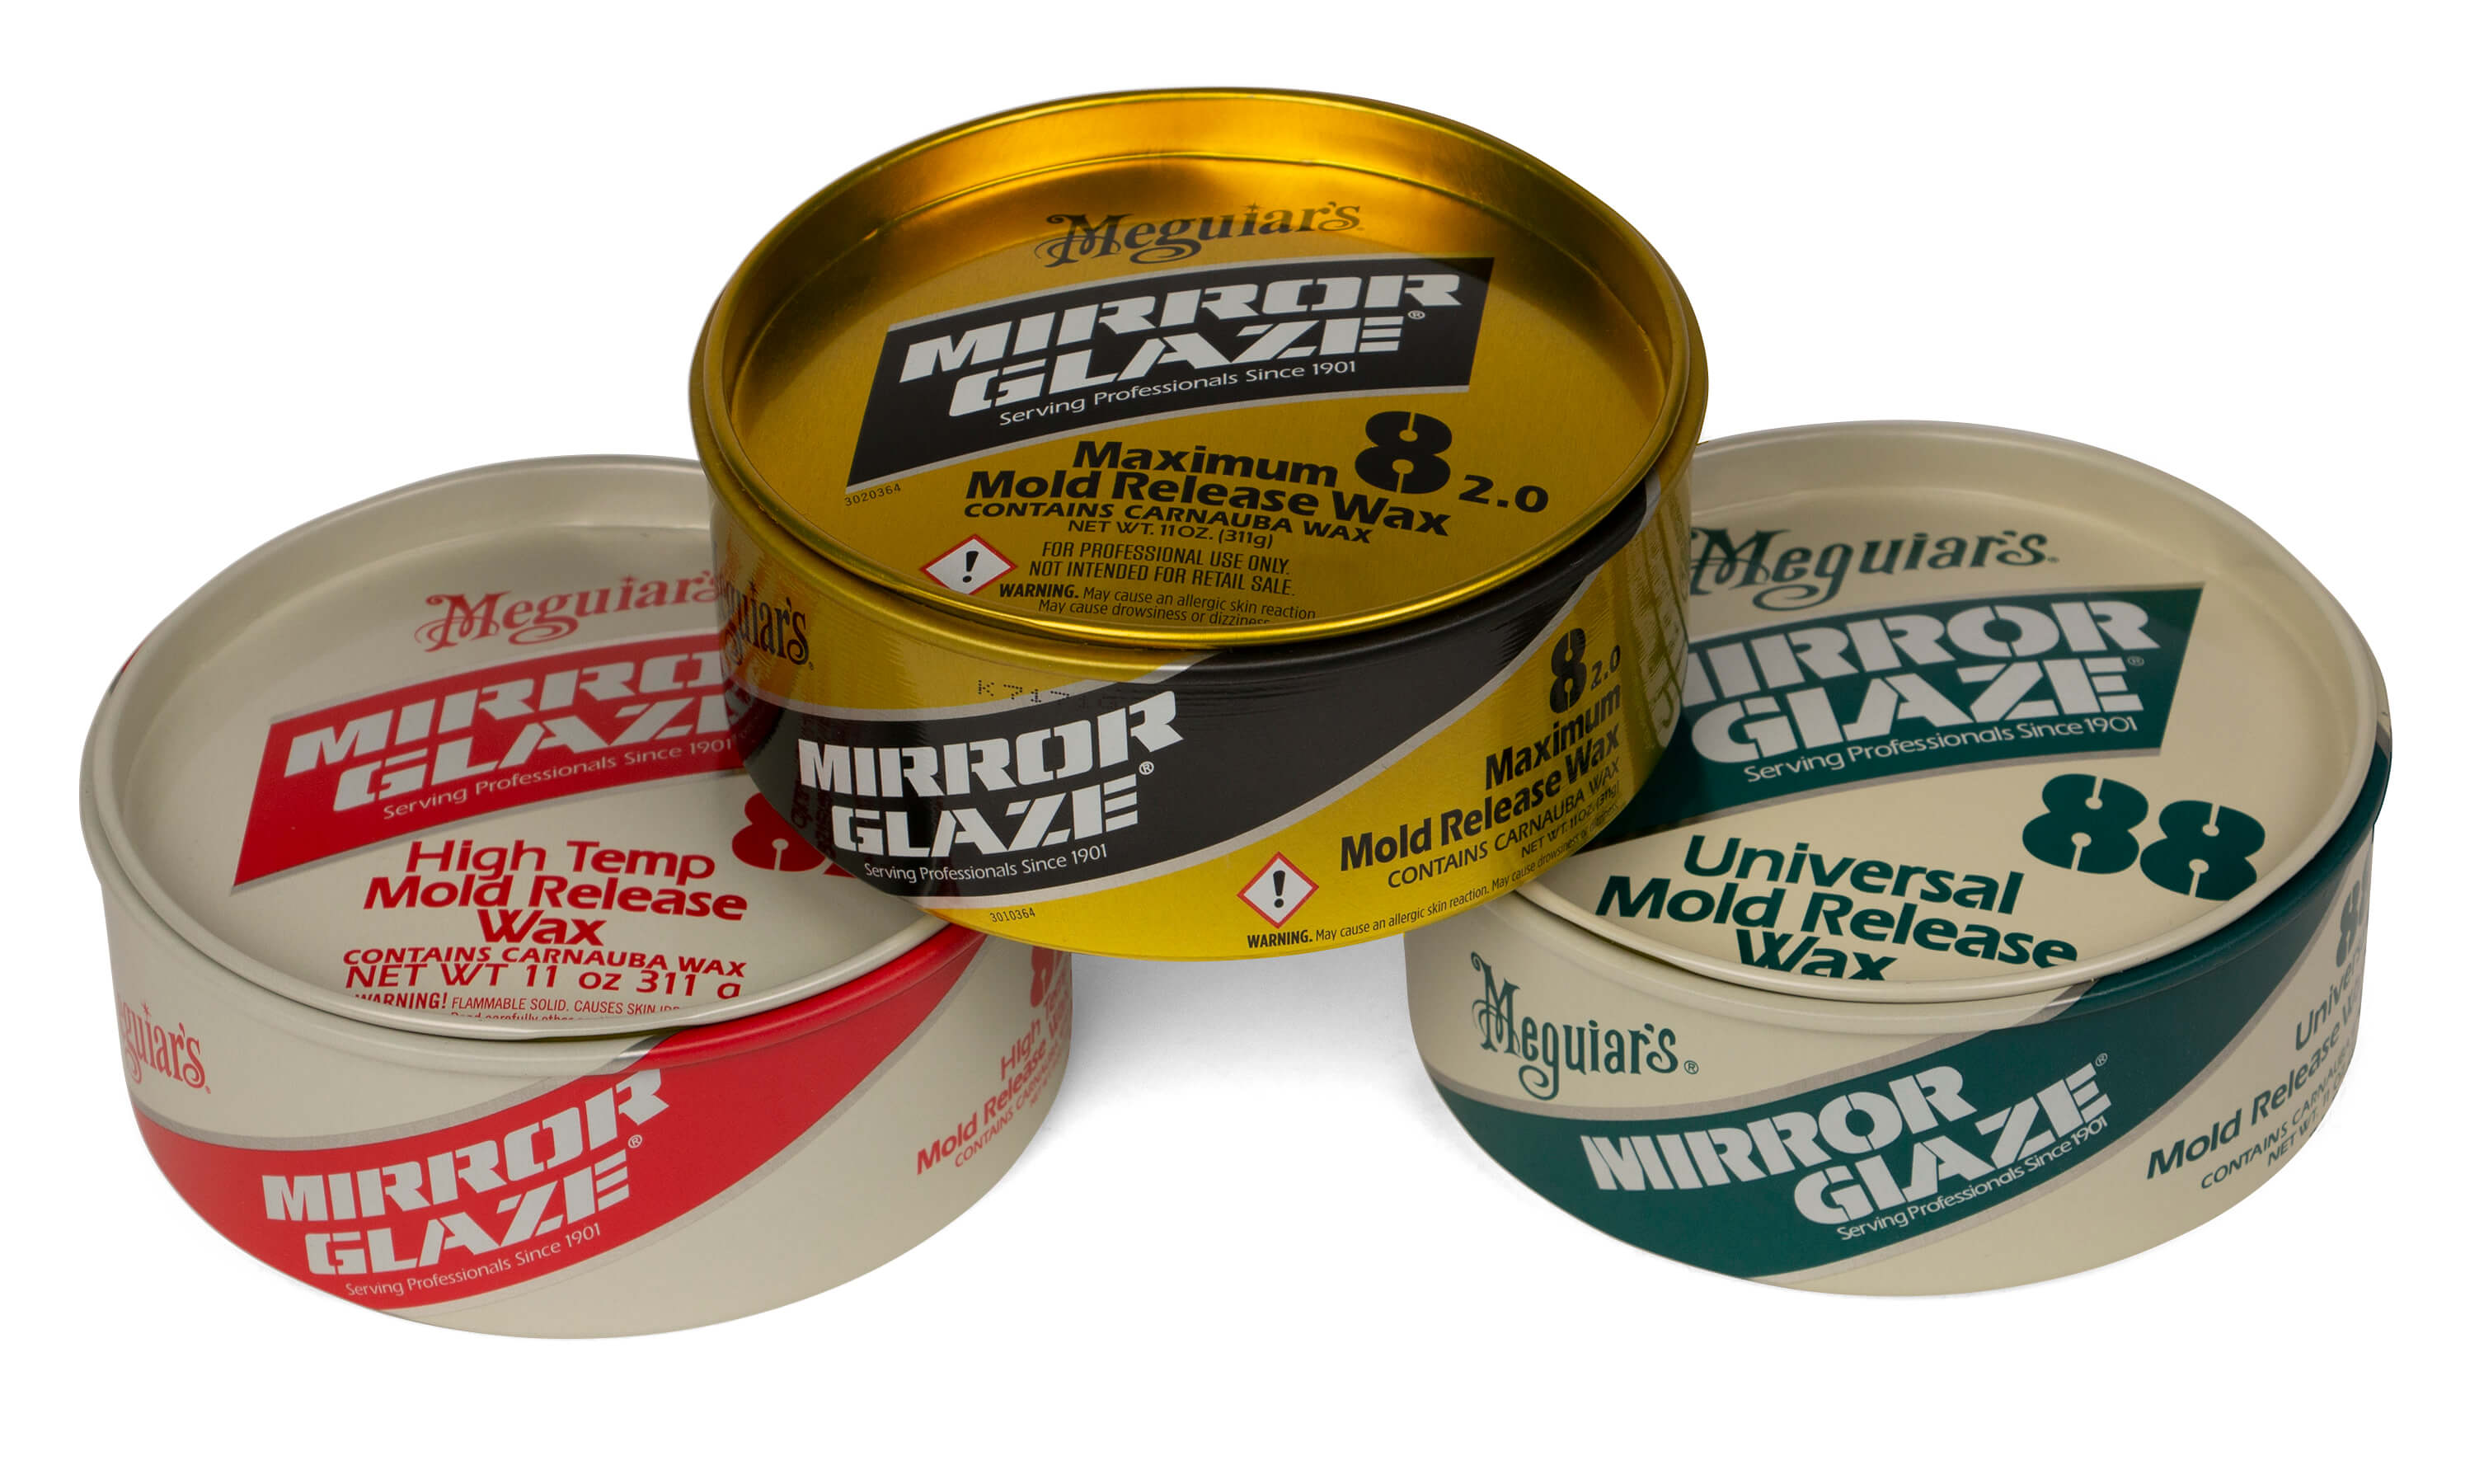 Product group image of Meguiar's M8 Past Wax Mold Release